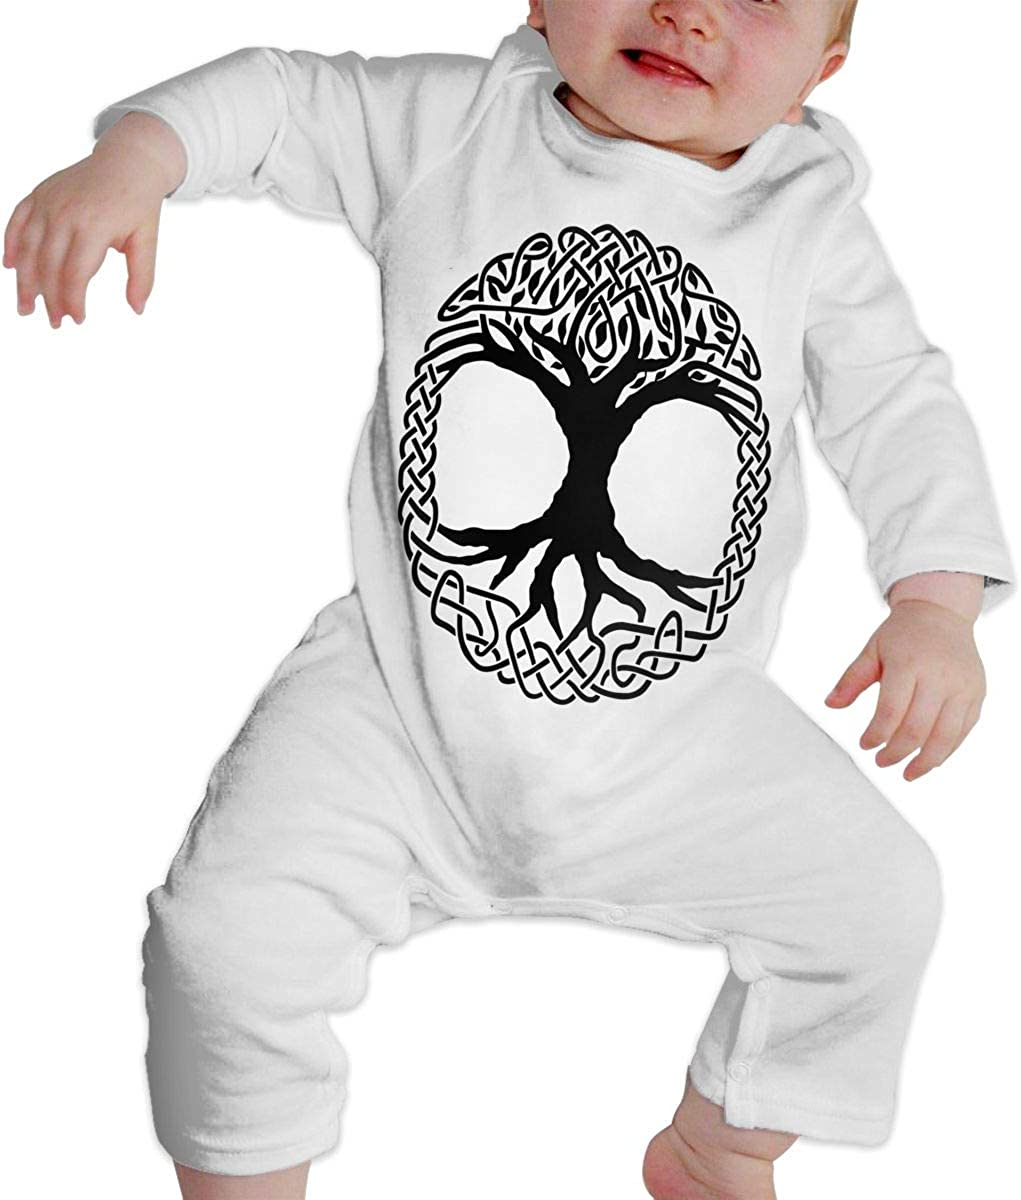 YELTY6F Celtic Tree of Life Printed Boys Girls One-Piece Suit Long Sleeve Rompers White